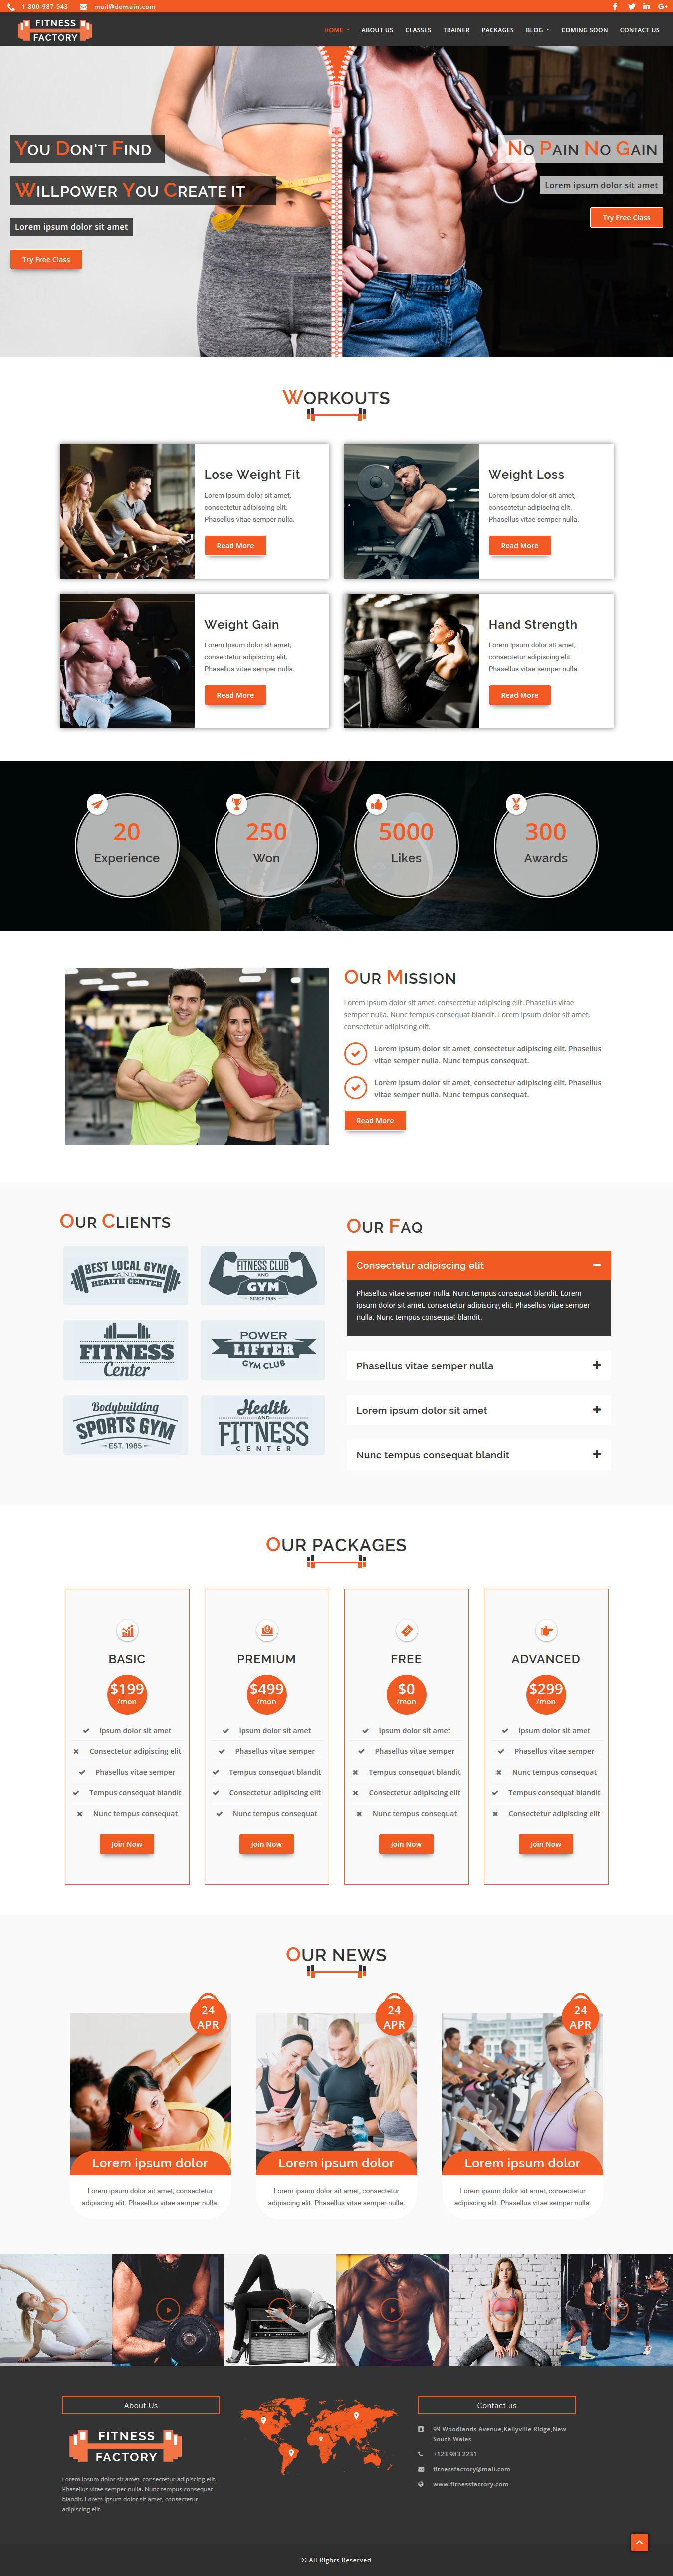 FitnessFactory - WordPress Theme Screenshot 1